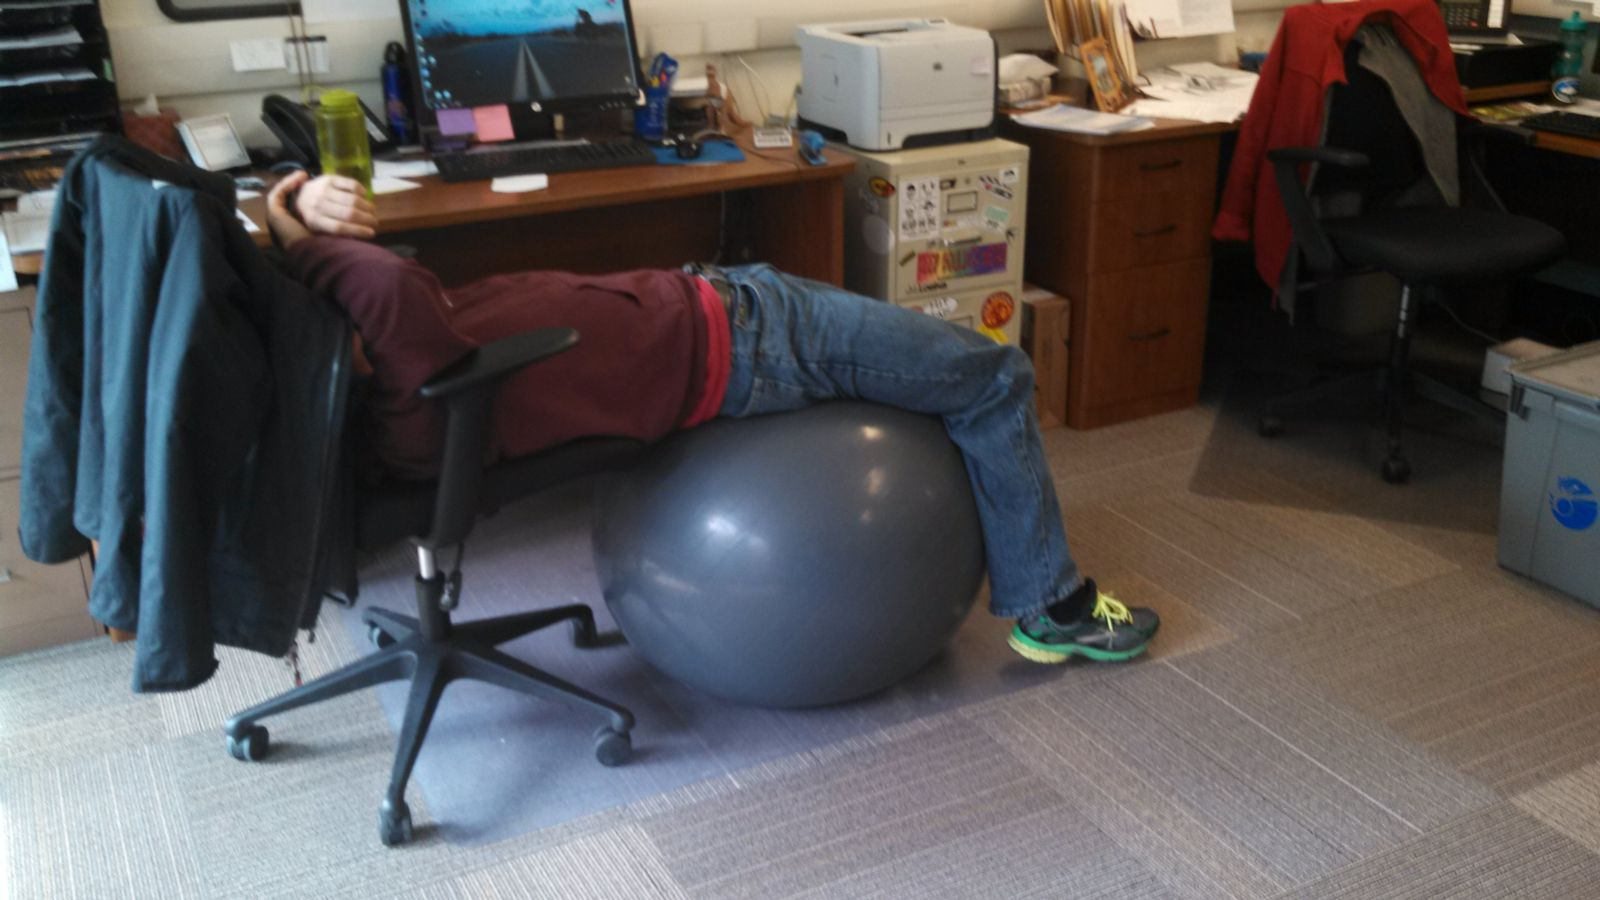 The Exercise Ball Has Also Served As A Reminder That Even Though I Only Have Limited Time For Training And Getting In Shape Demands Of Summer Biking